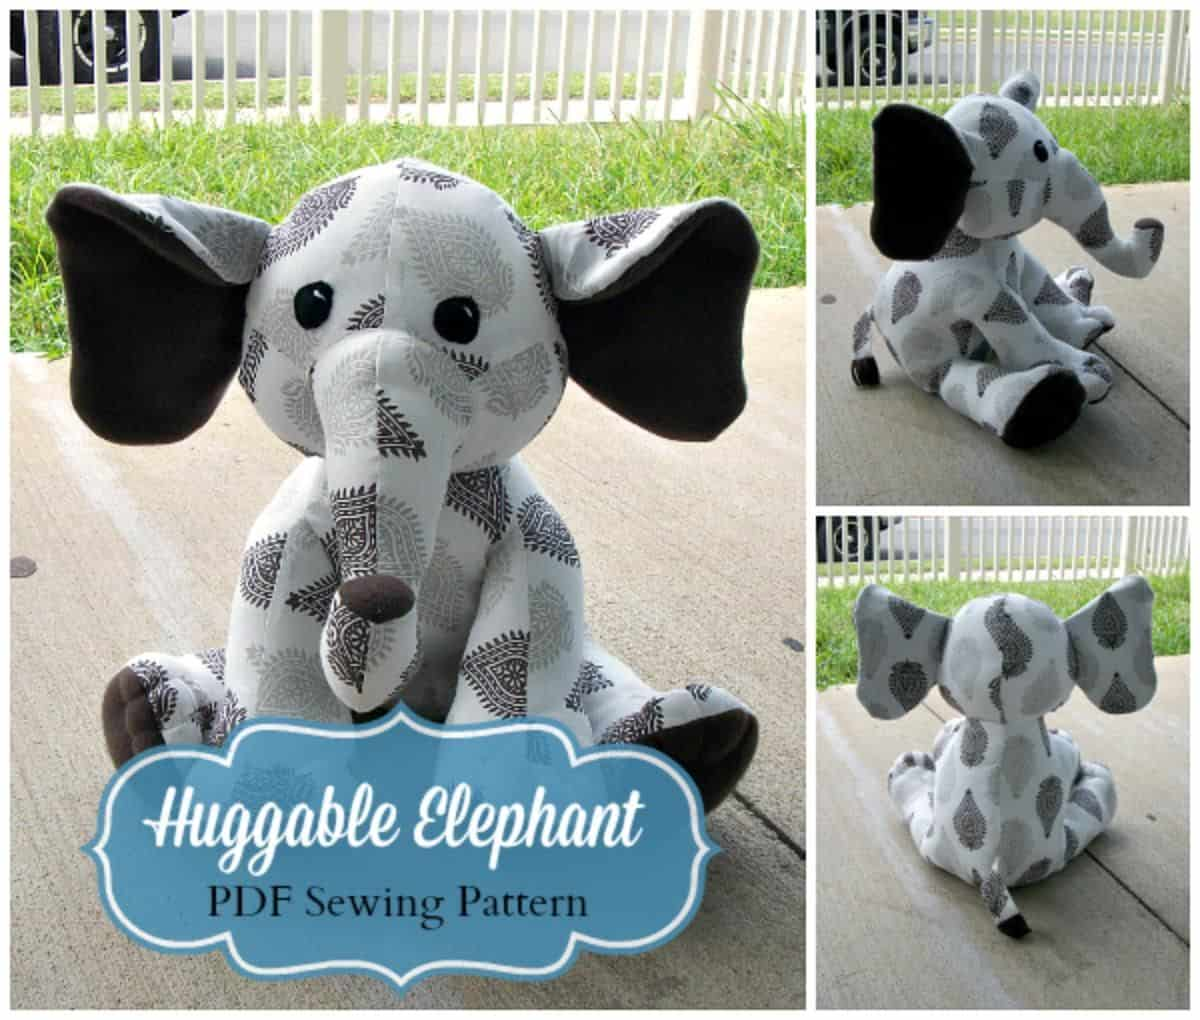 Huggable sewn elephant